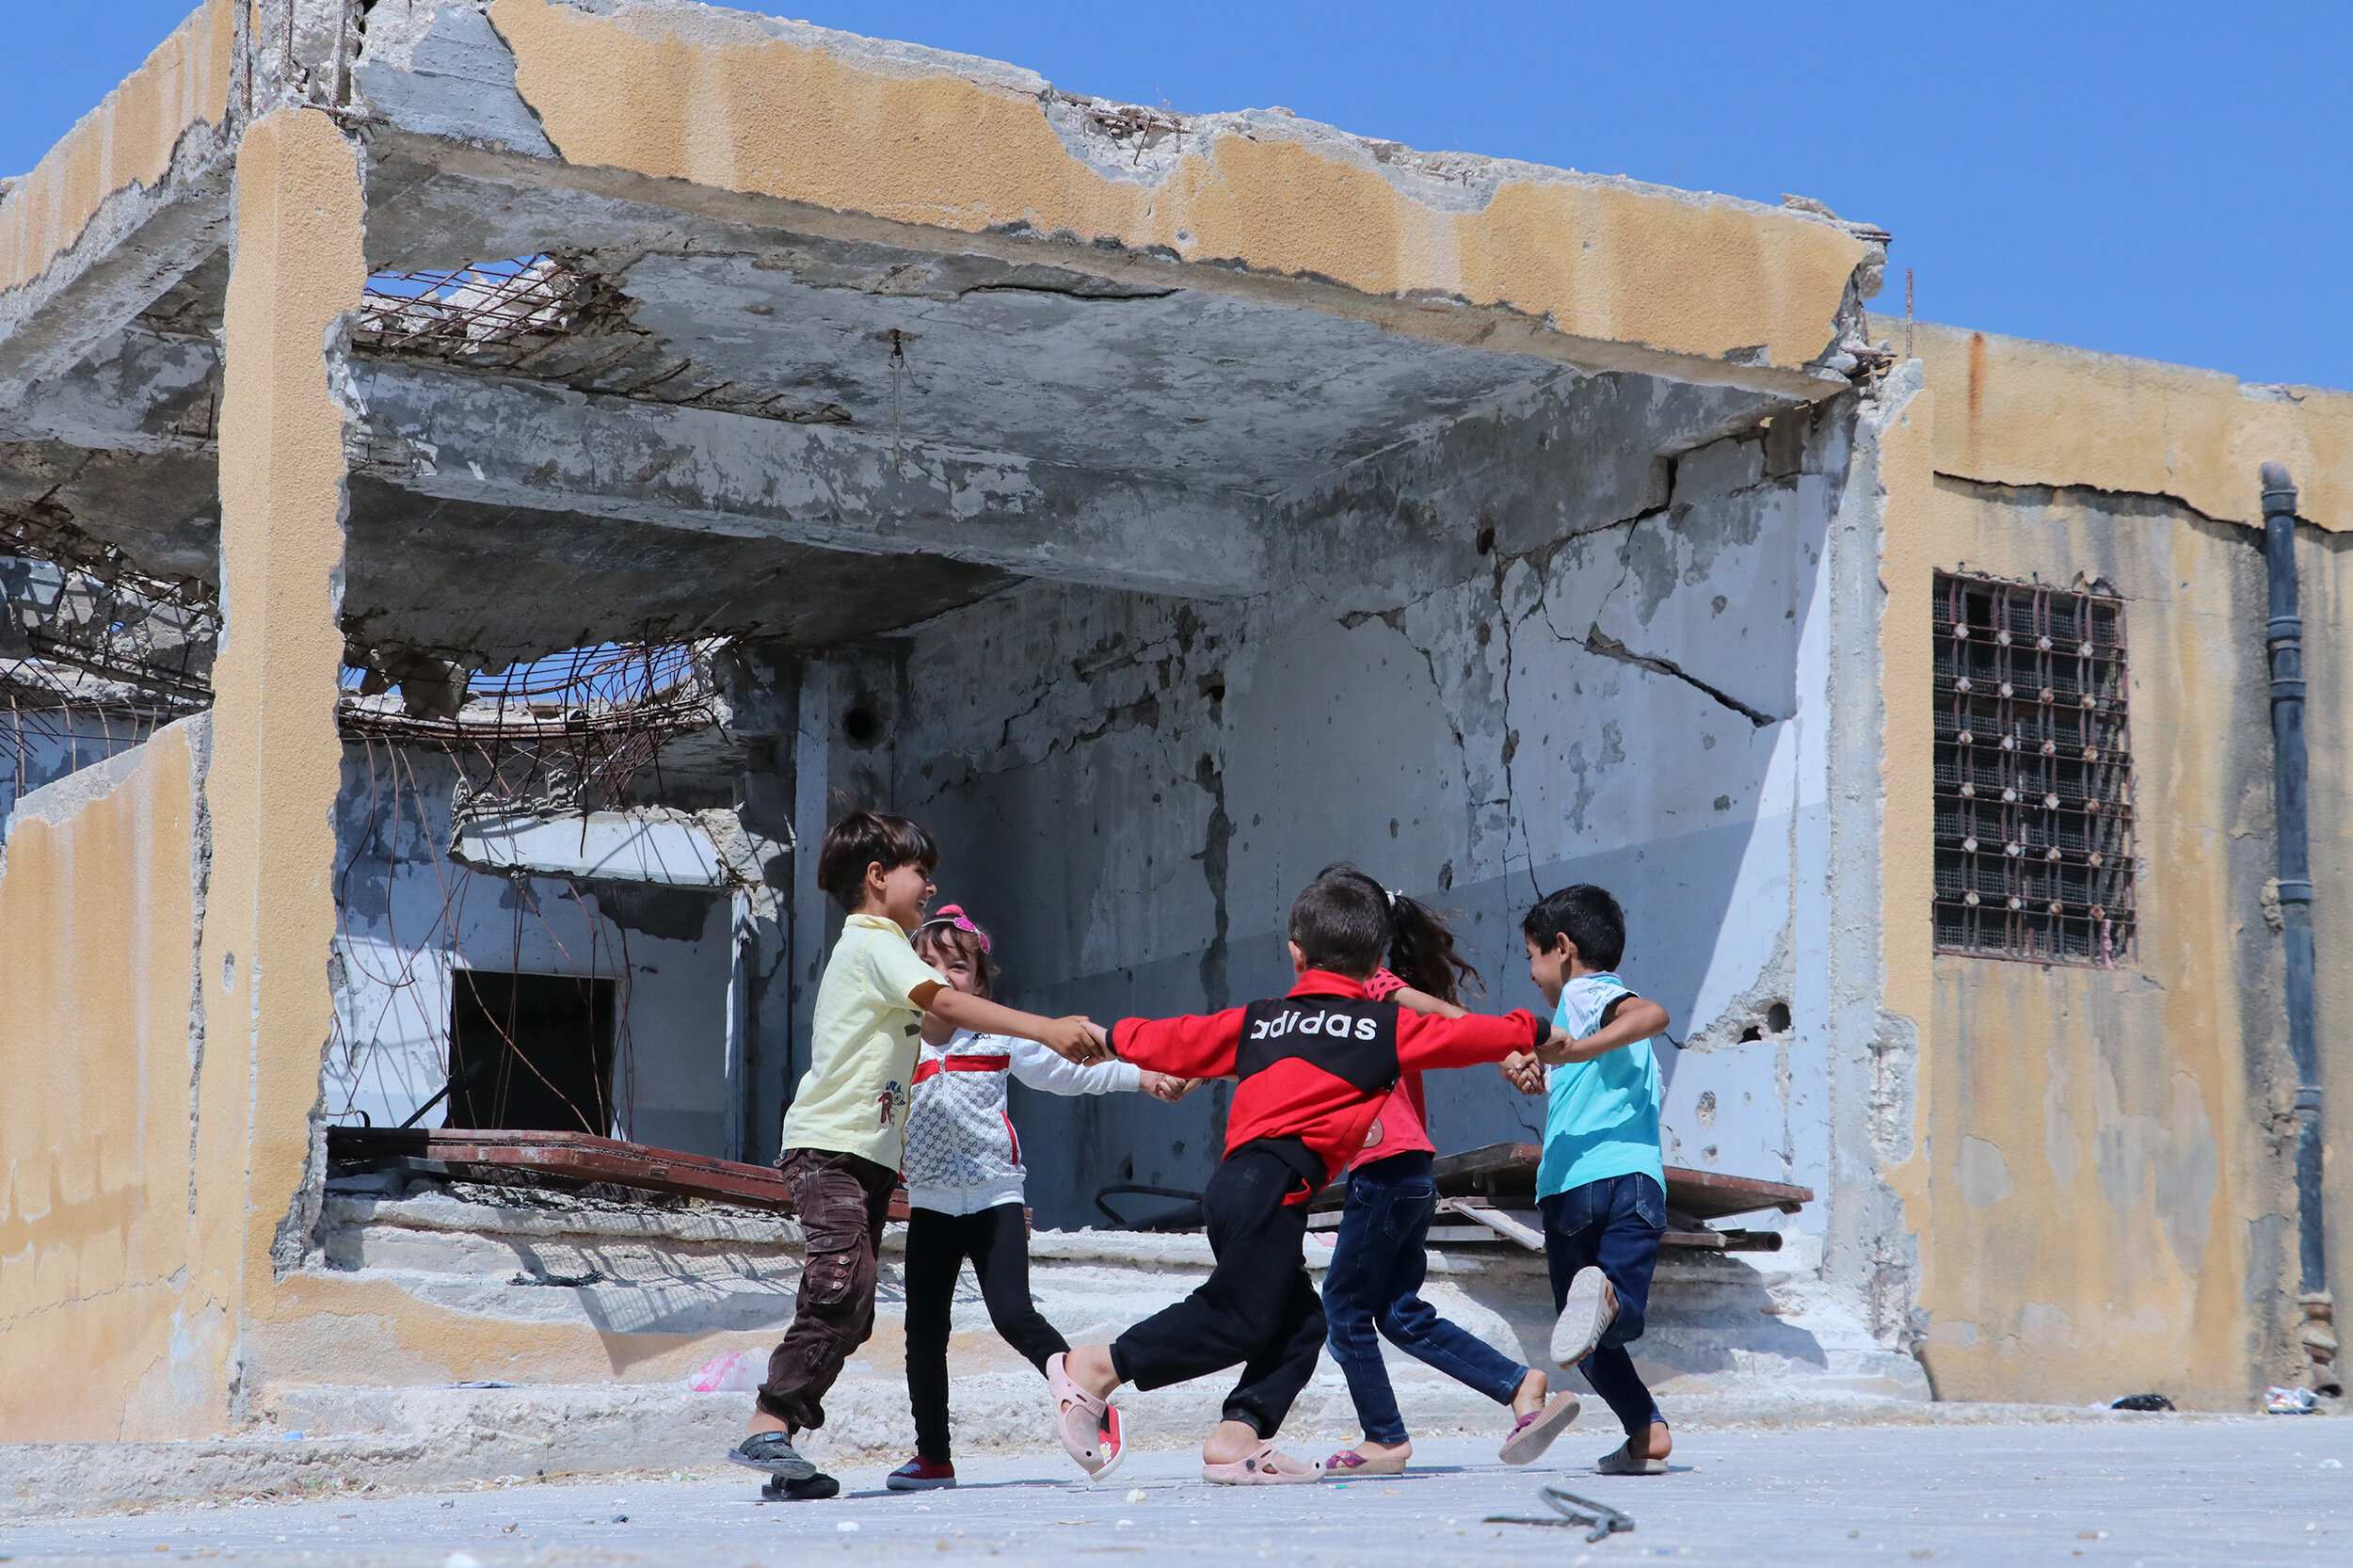 Children play outside their war-damaged school near Idlib, Syria. © 2019 Save the Children